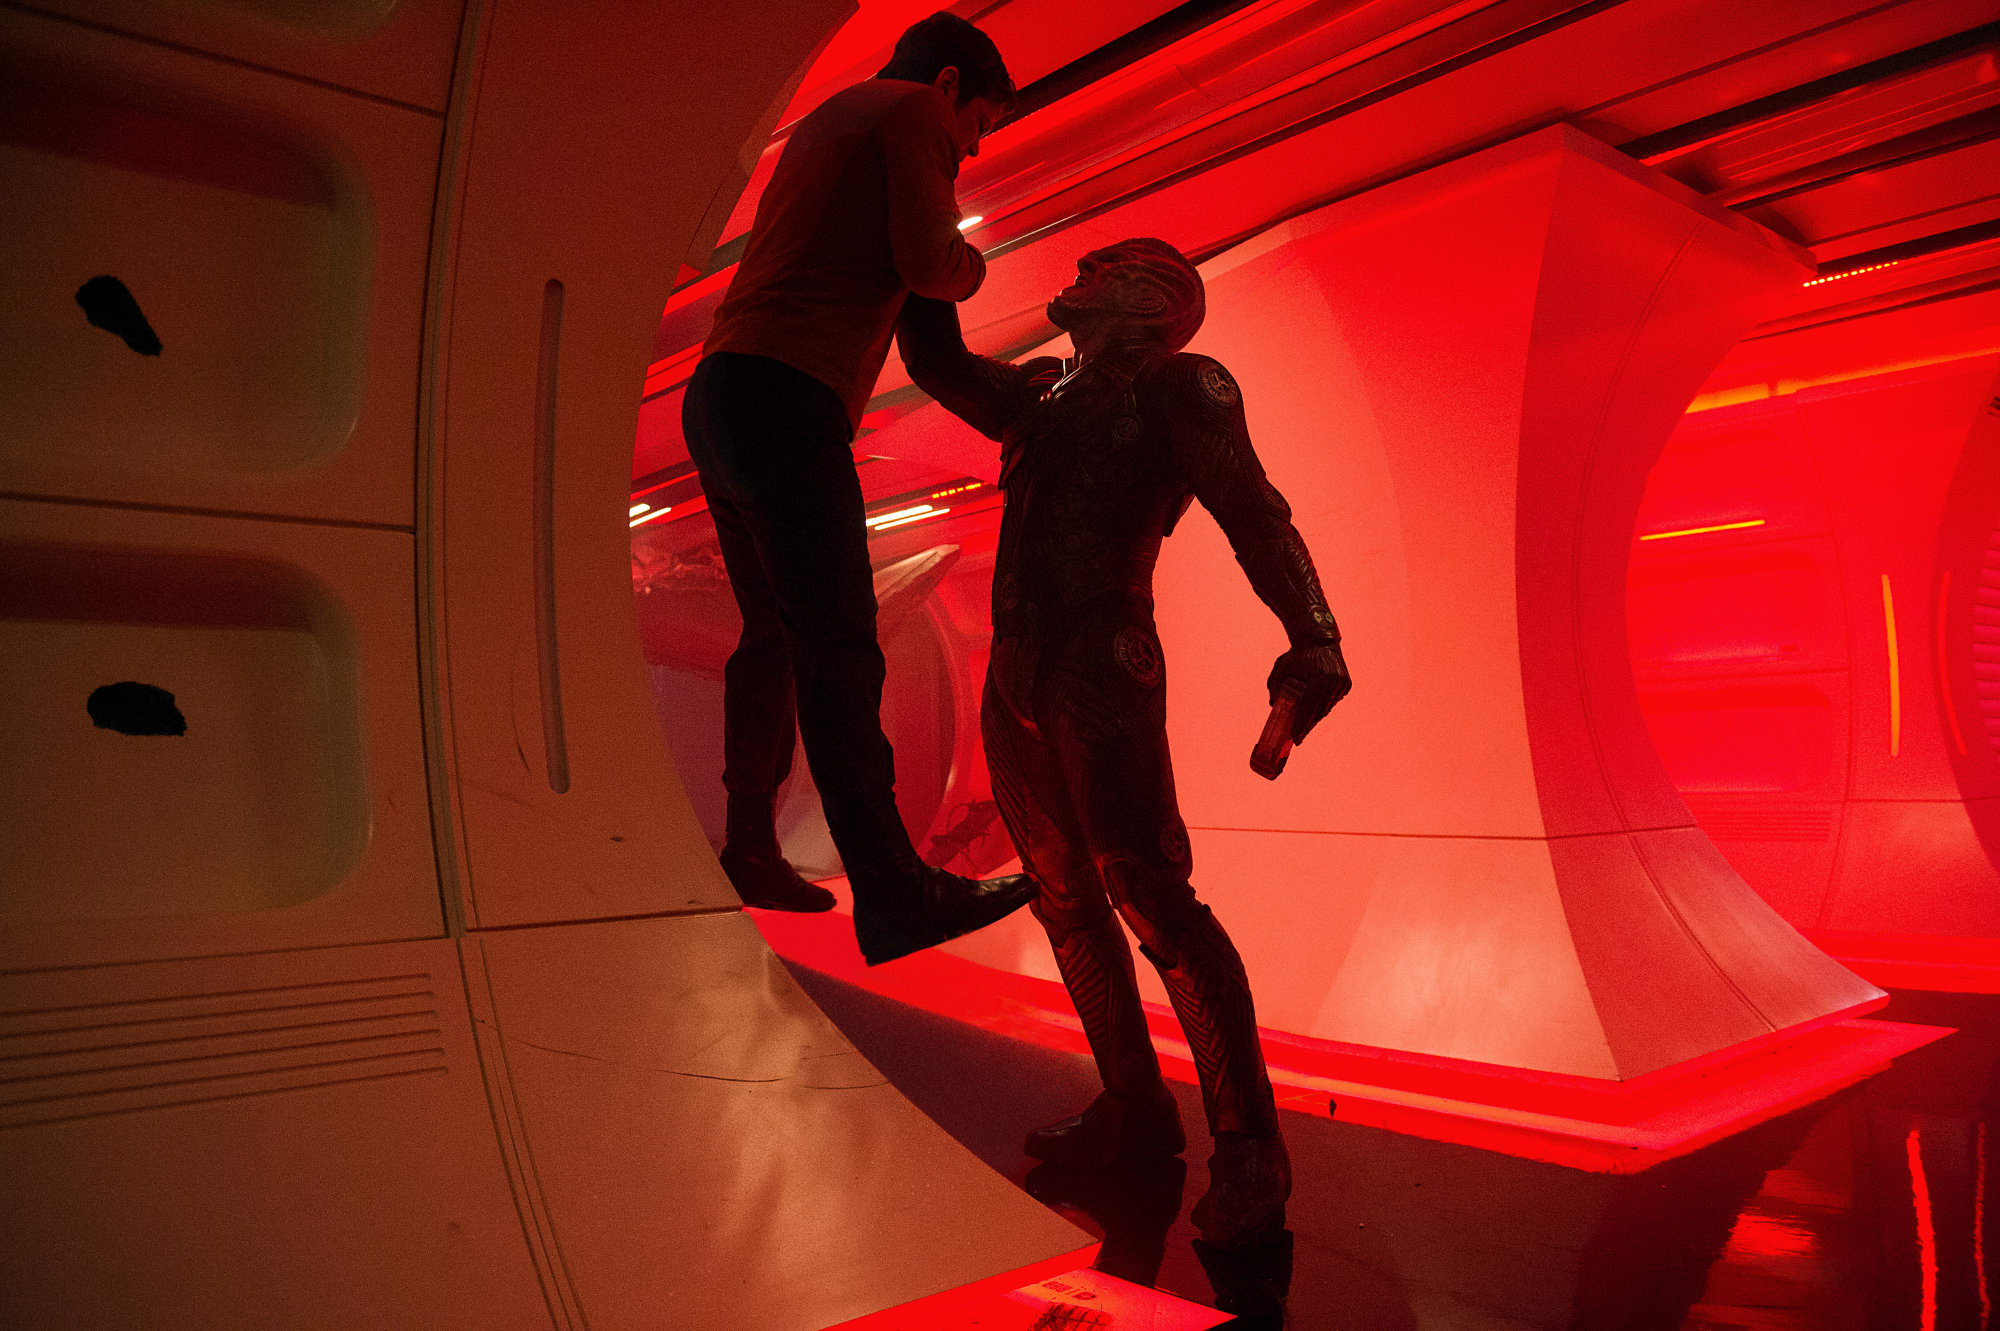 Old quotes about Star Trek: Beyond paint different story with modern light